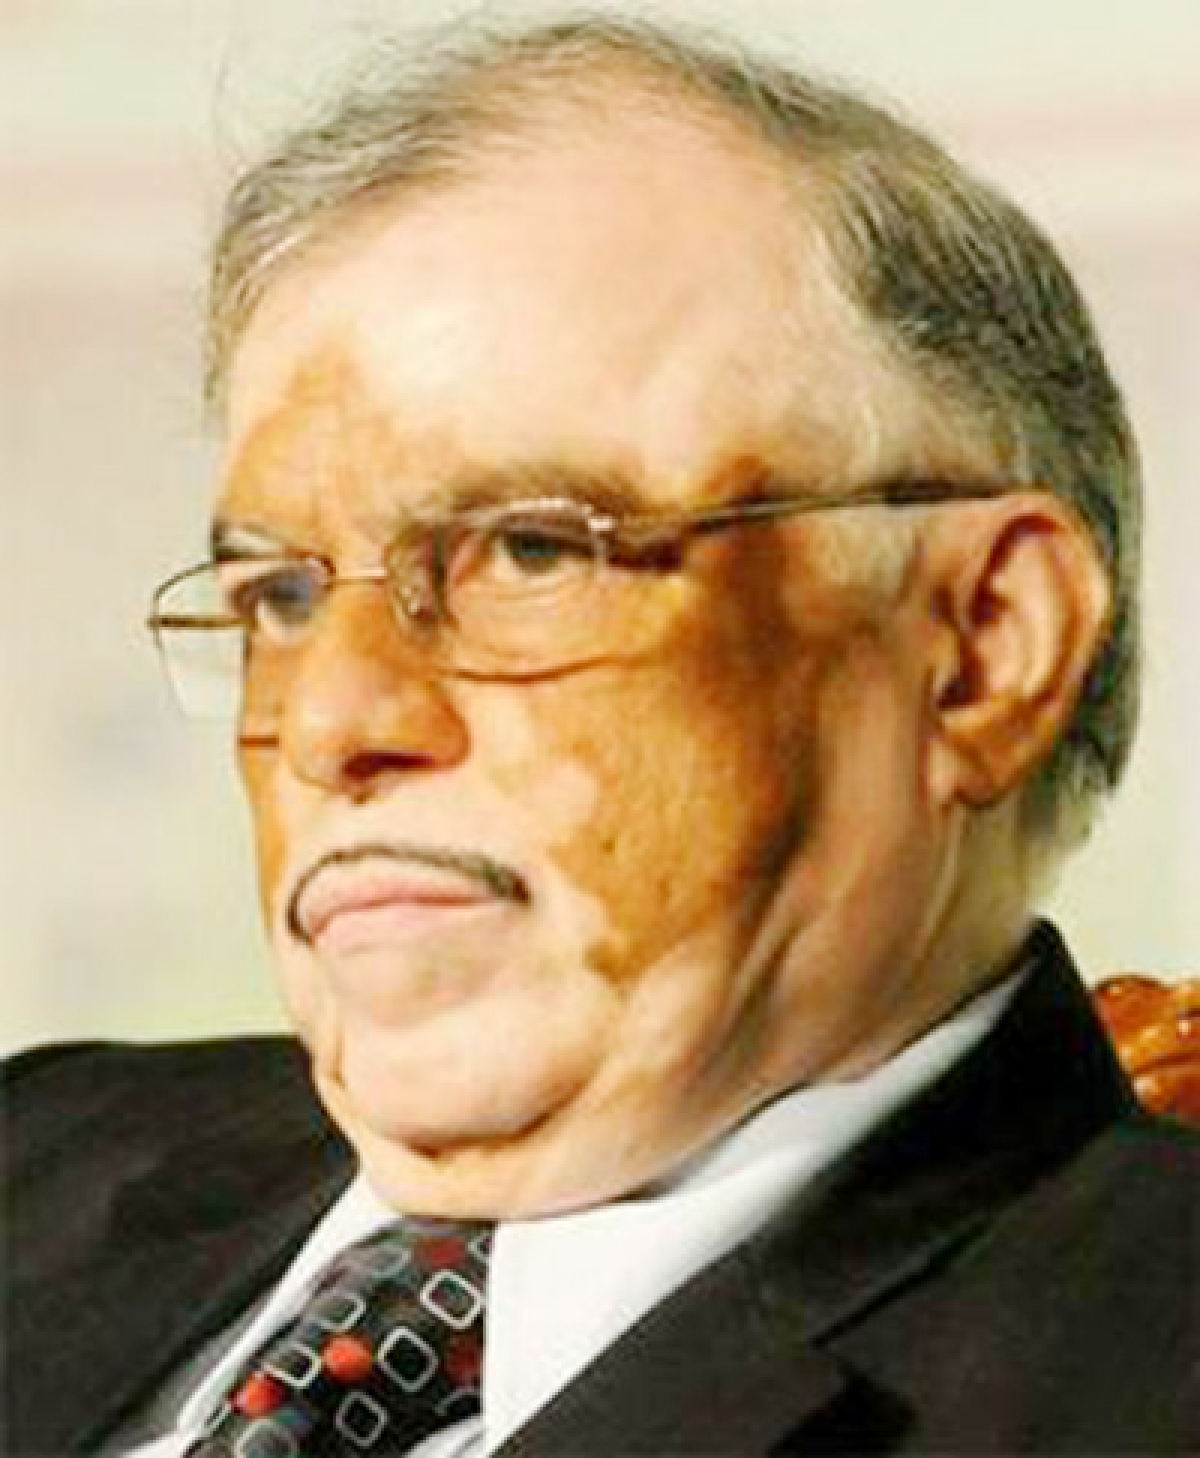 Sathsivam's appointment, Congress confused as leaders speak in different voices